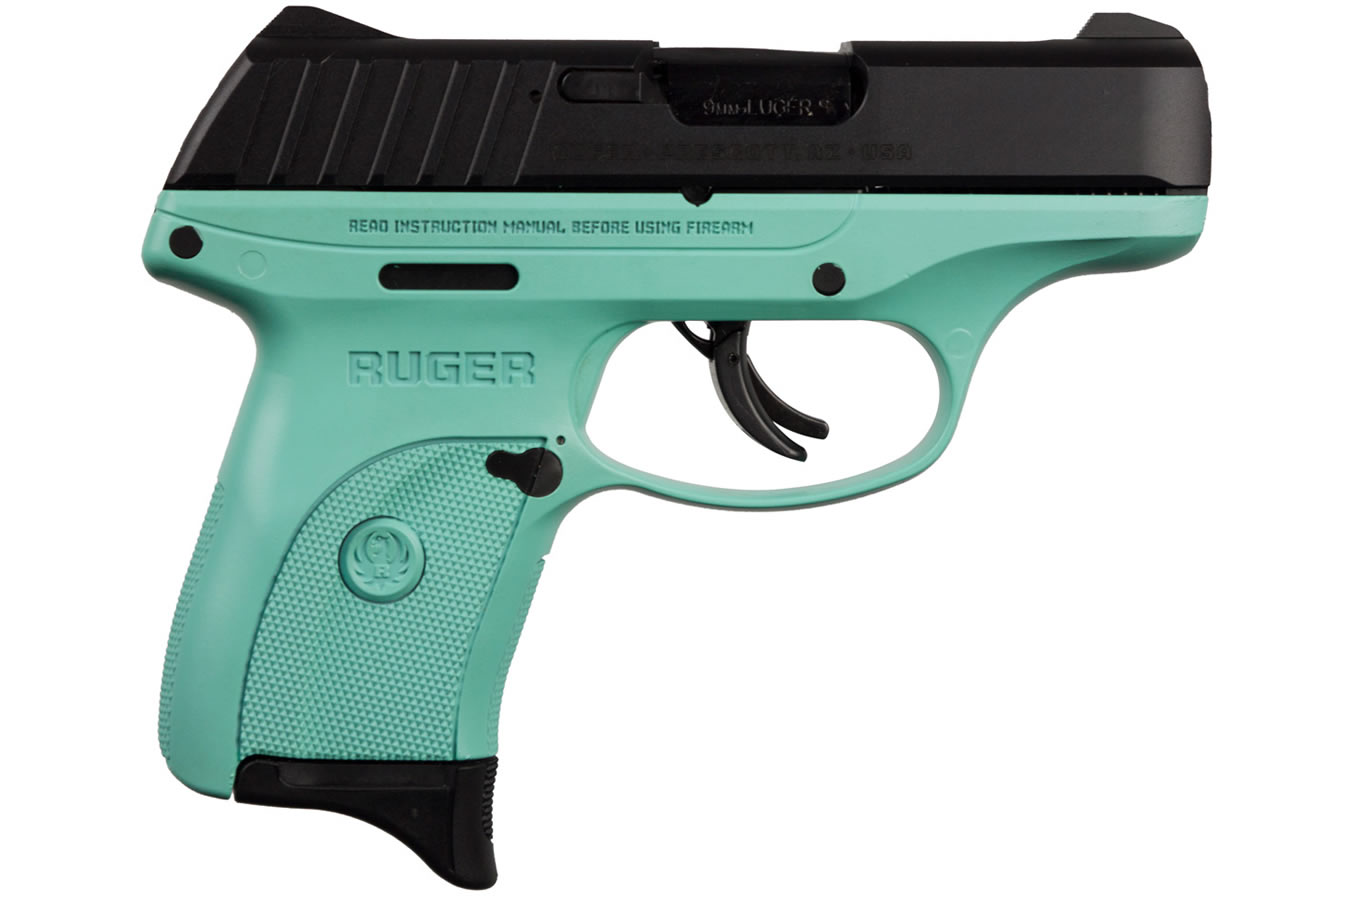 RUGER EC9S 9MM WITH TURQUOISE GRIP FRAME